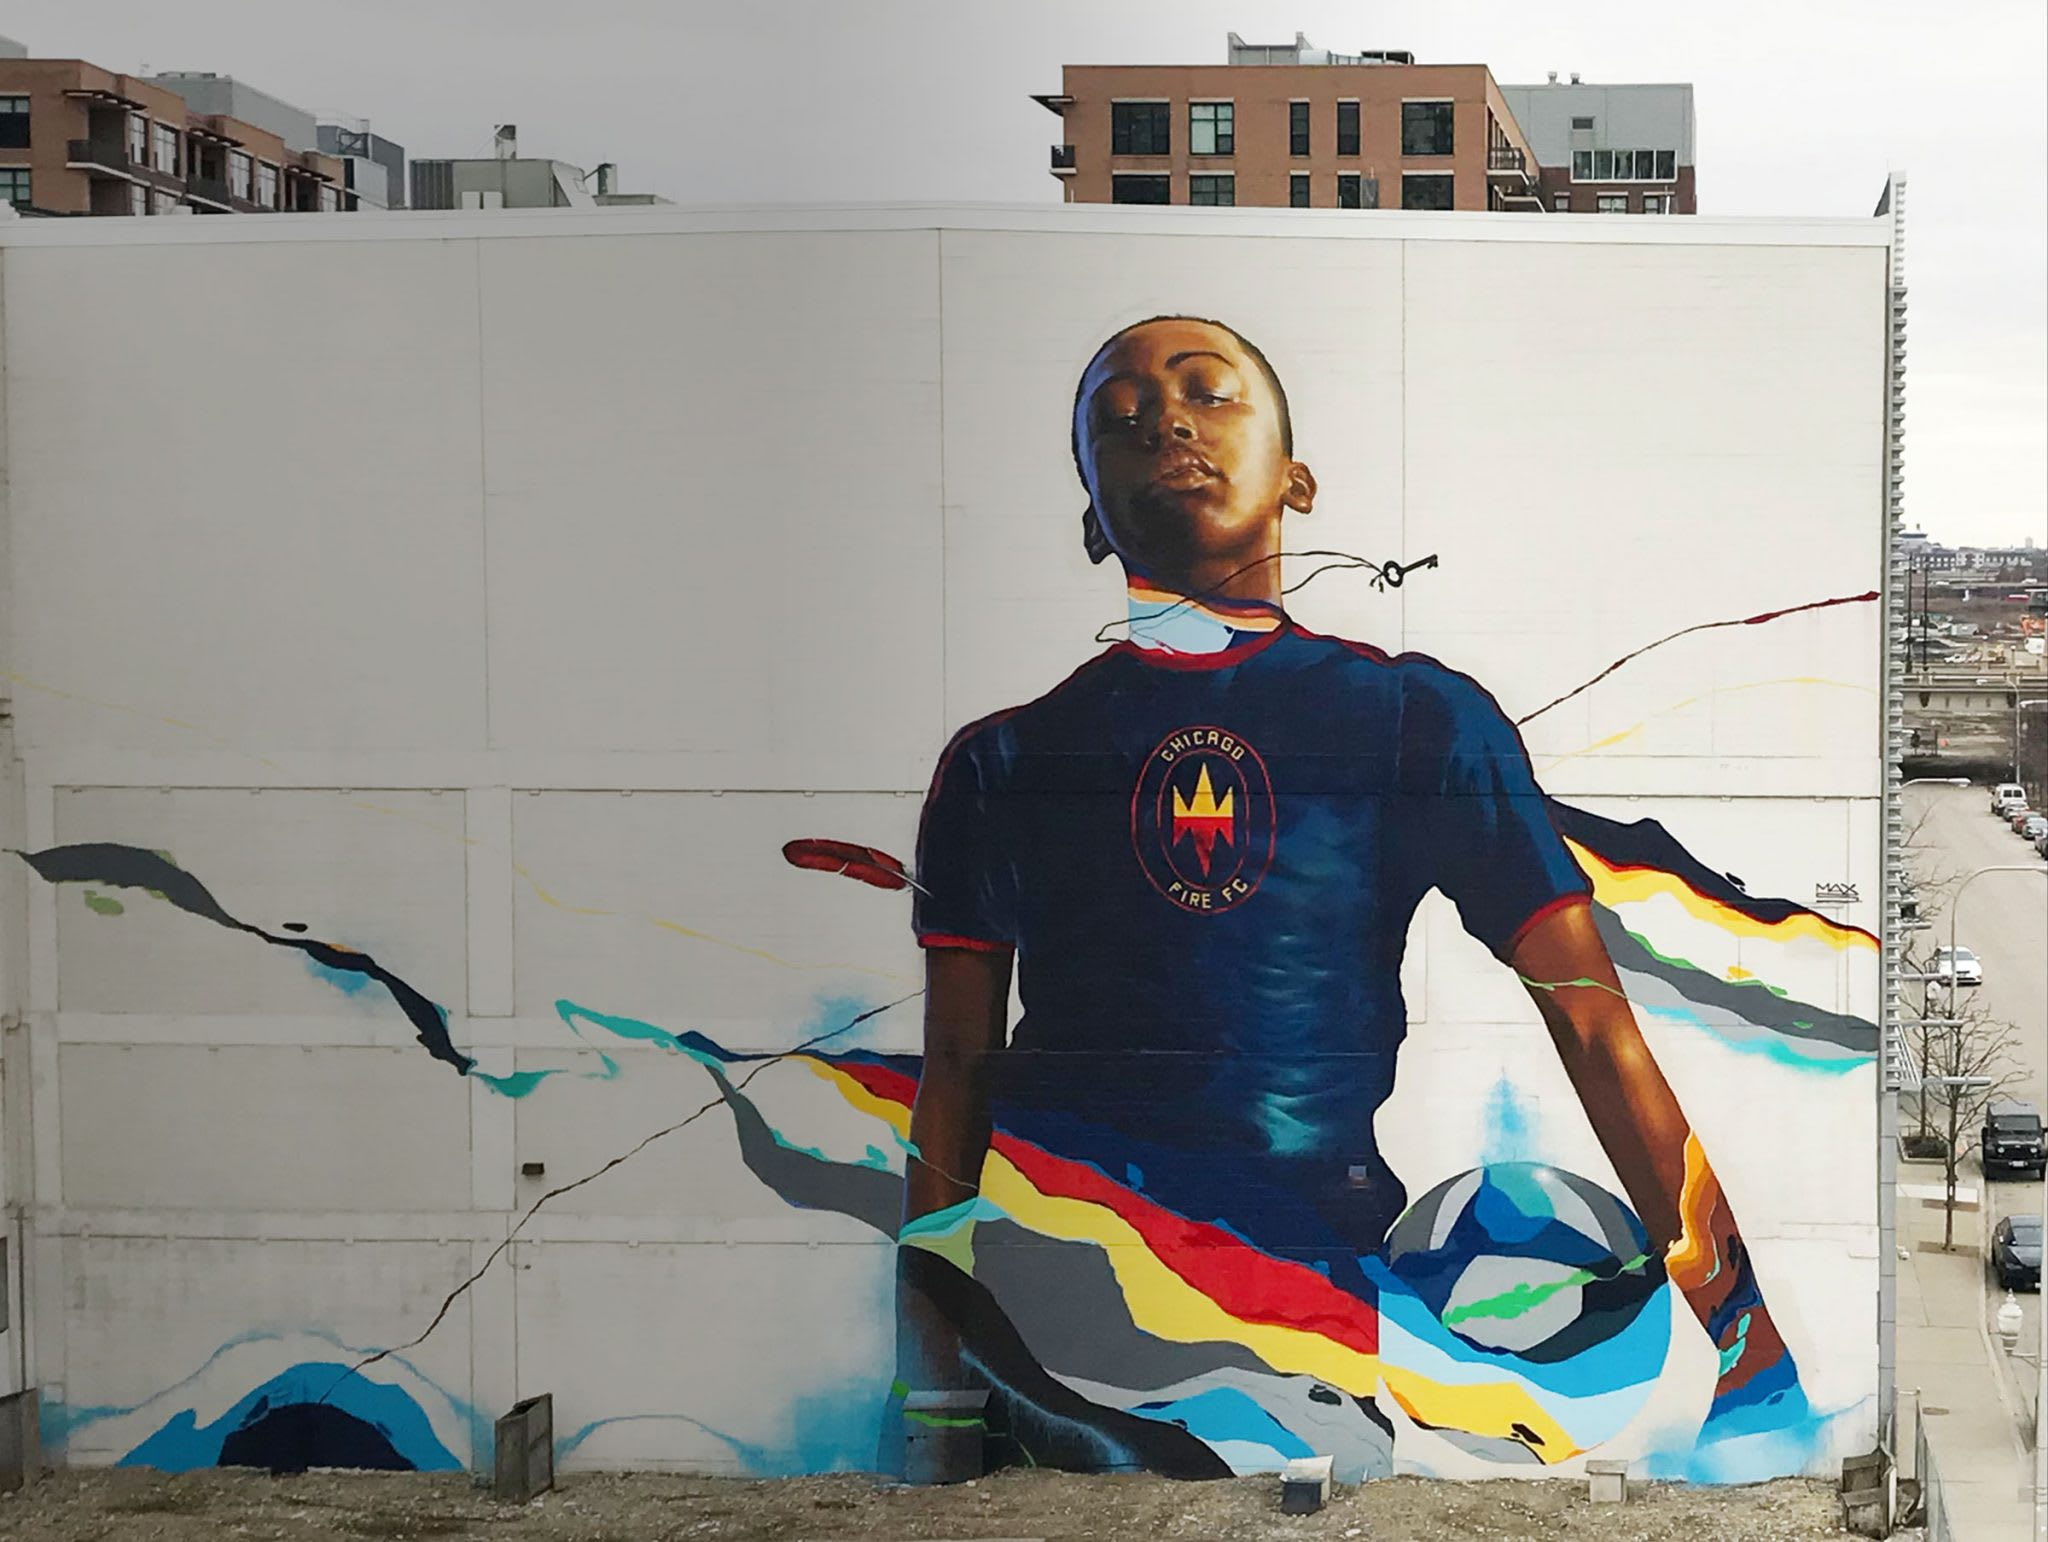 outdoor mural on the side of a building of kid wearing a Chicago Fire soccer jersey